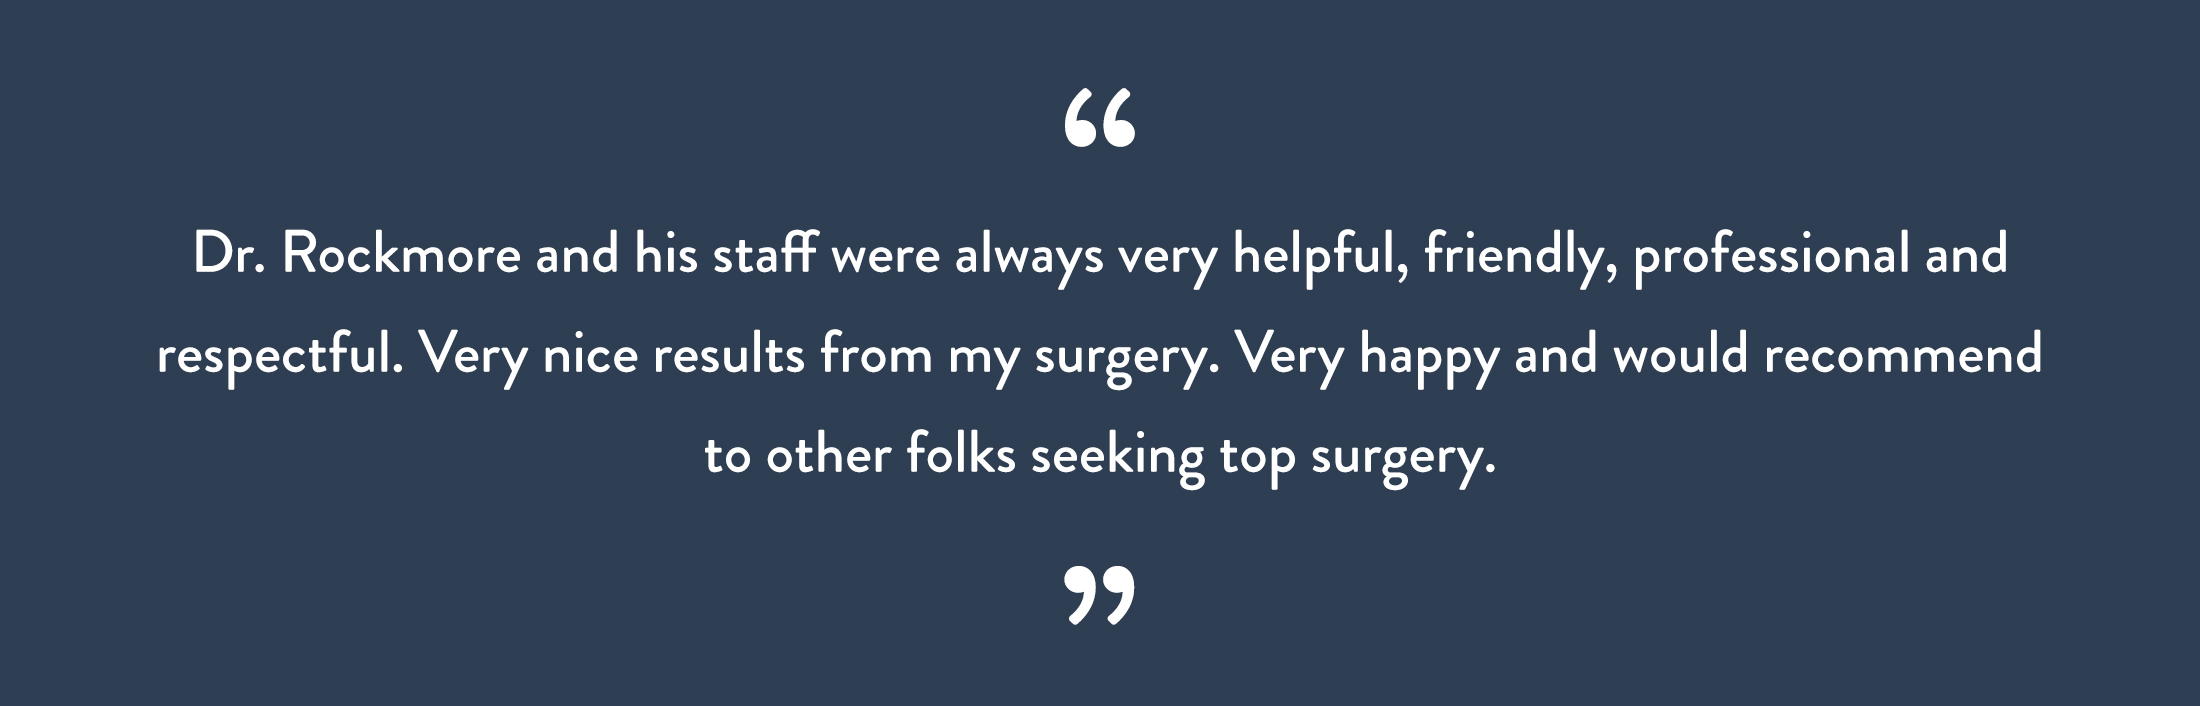 Dr. Rockmore and his staff were always very helpful, friendly, professional and respectful.